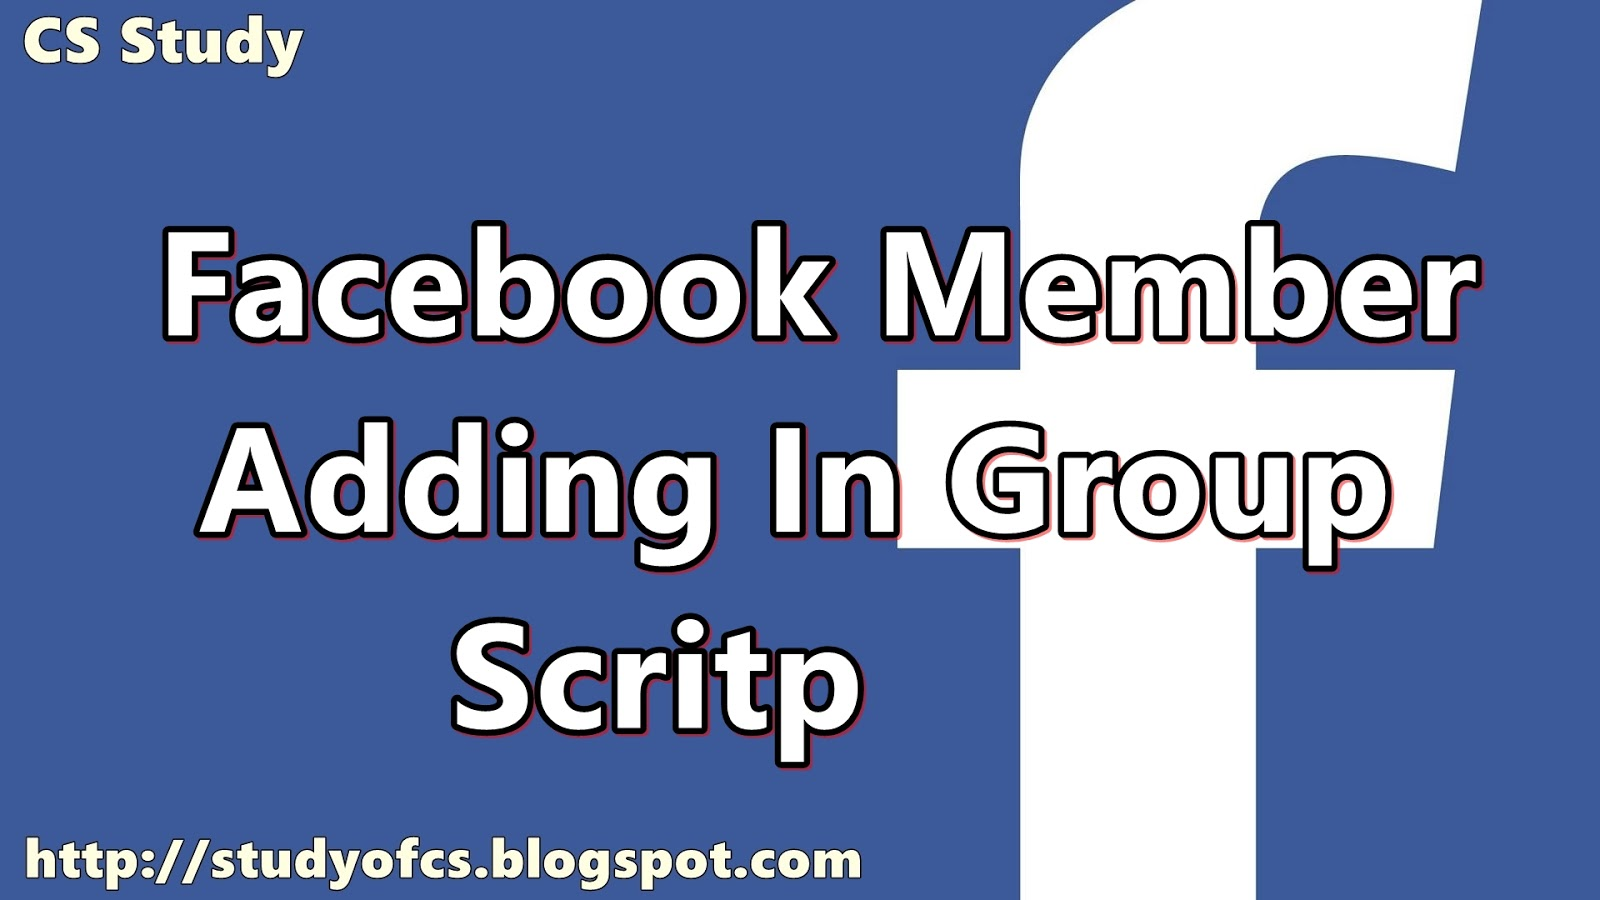 Add Group To Group 91